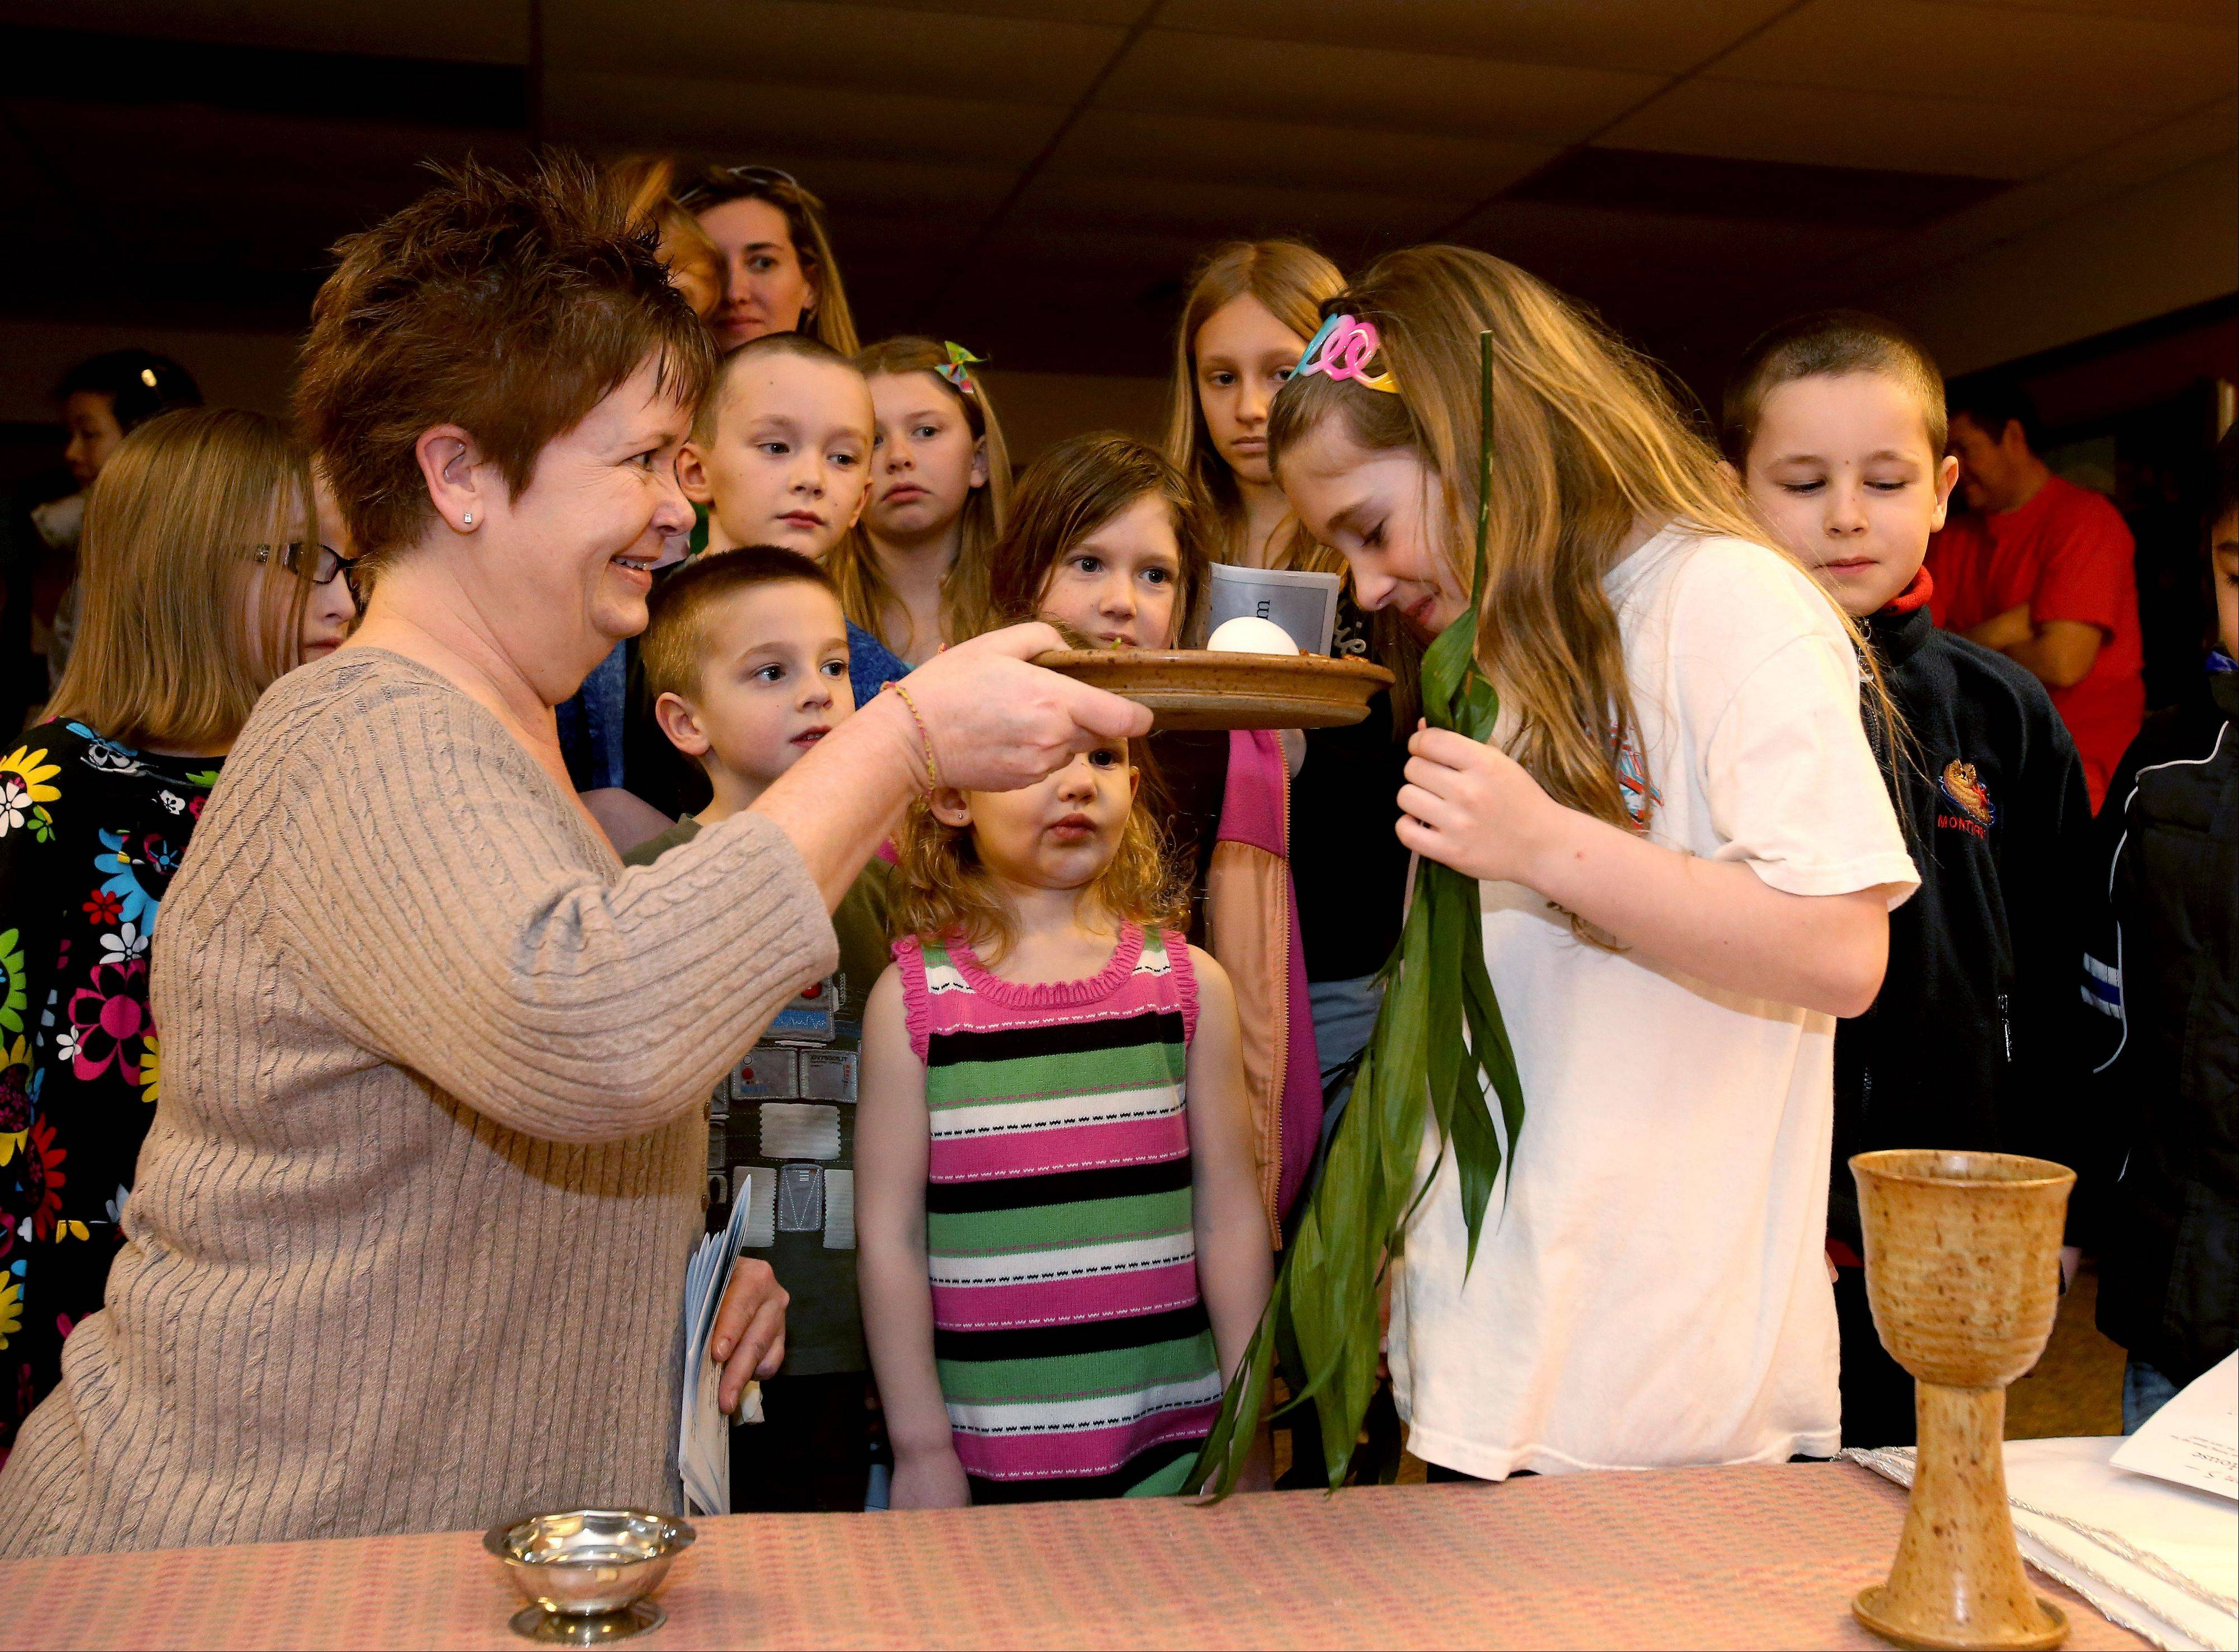 Cathy Fulgham asks Allison Anderson to smell the horseradish as she tells youngsters about Passover food during the Cross Walk at Alleluia! Lutheran Church in Naperville.